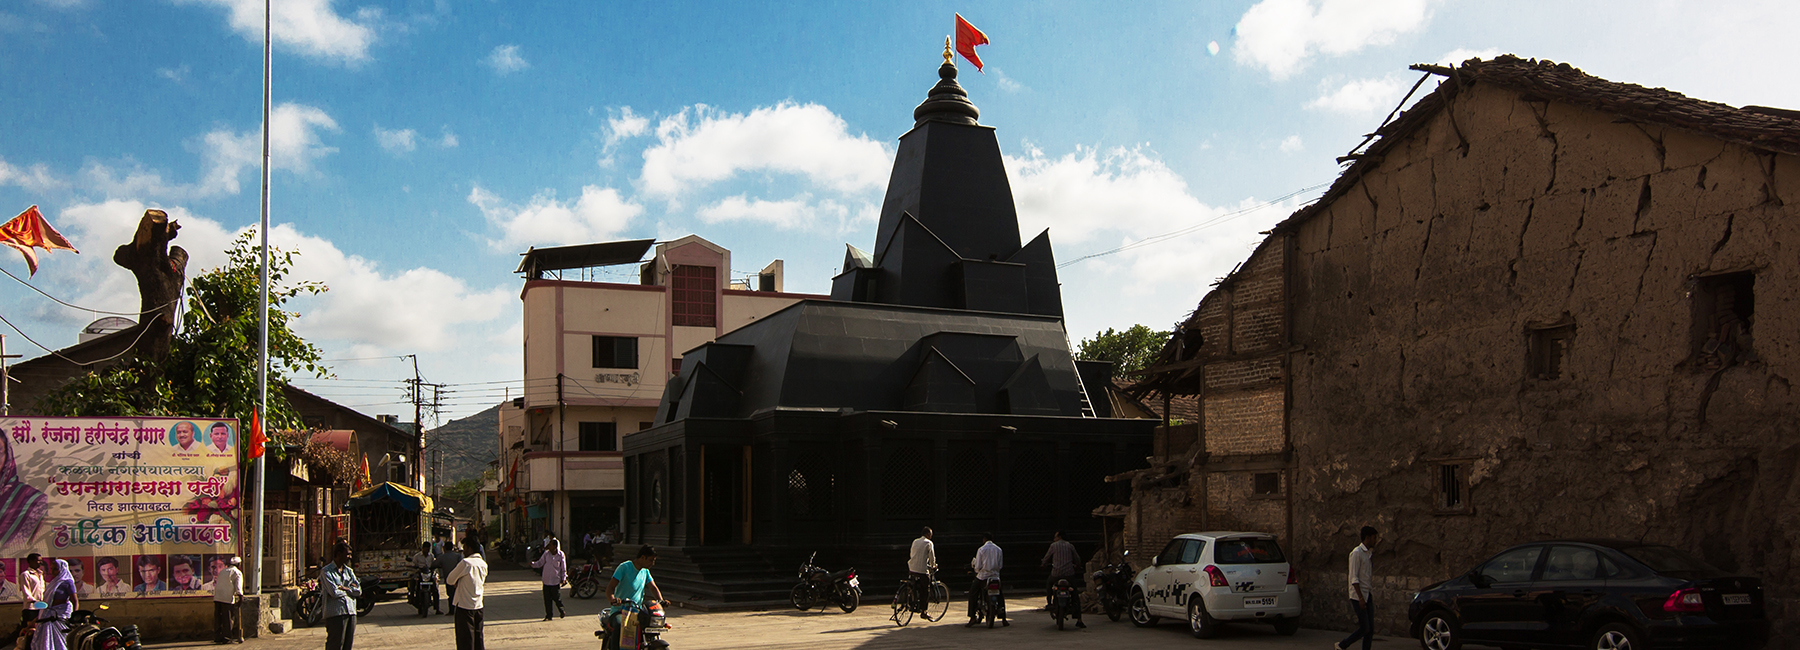 within-n-without-shailesh-devi-maruti-mandir-temple-india-designboom-1800.jpg